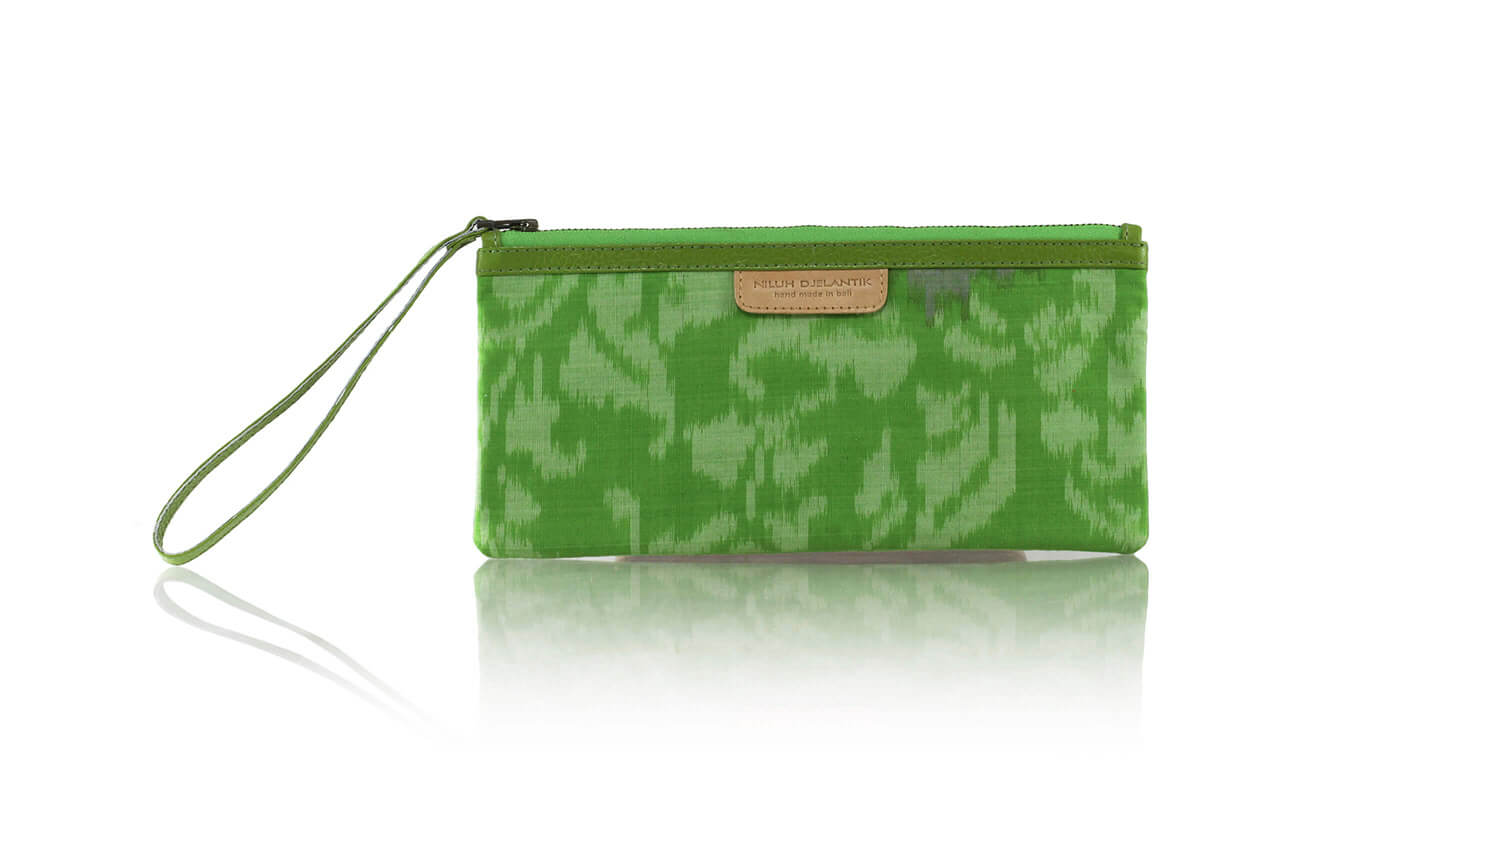 Leather-shoes-Clutch 11x23 - Green Handwoven Ikat-Zipper Clutch-NILUH DJELANTIK-NILUH DJELANTIK